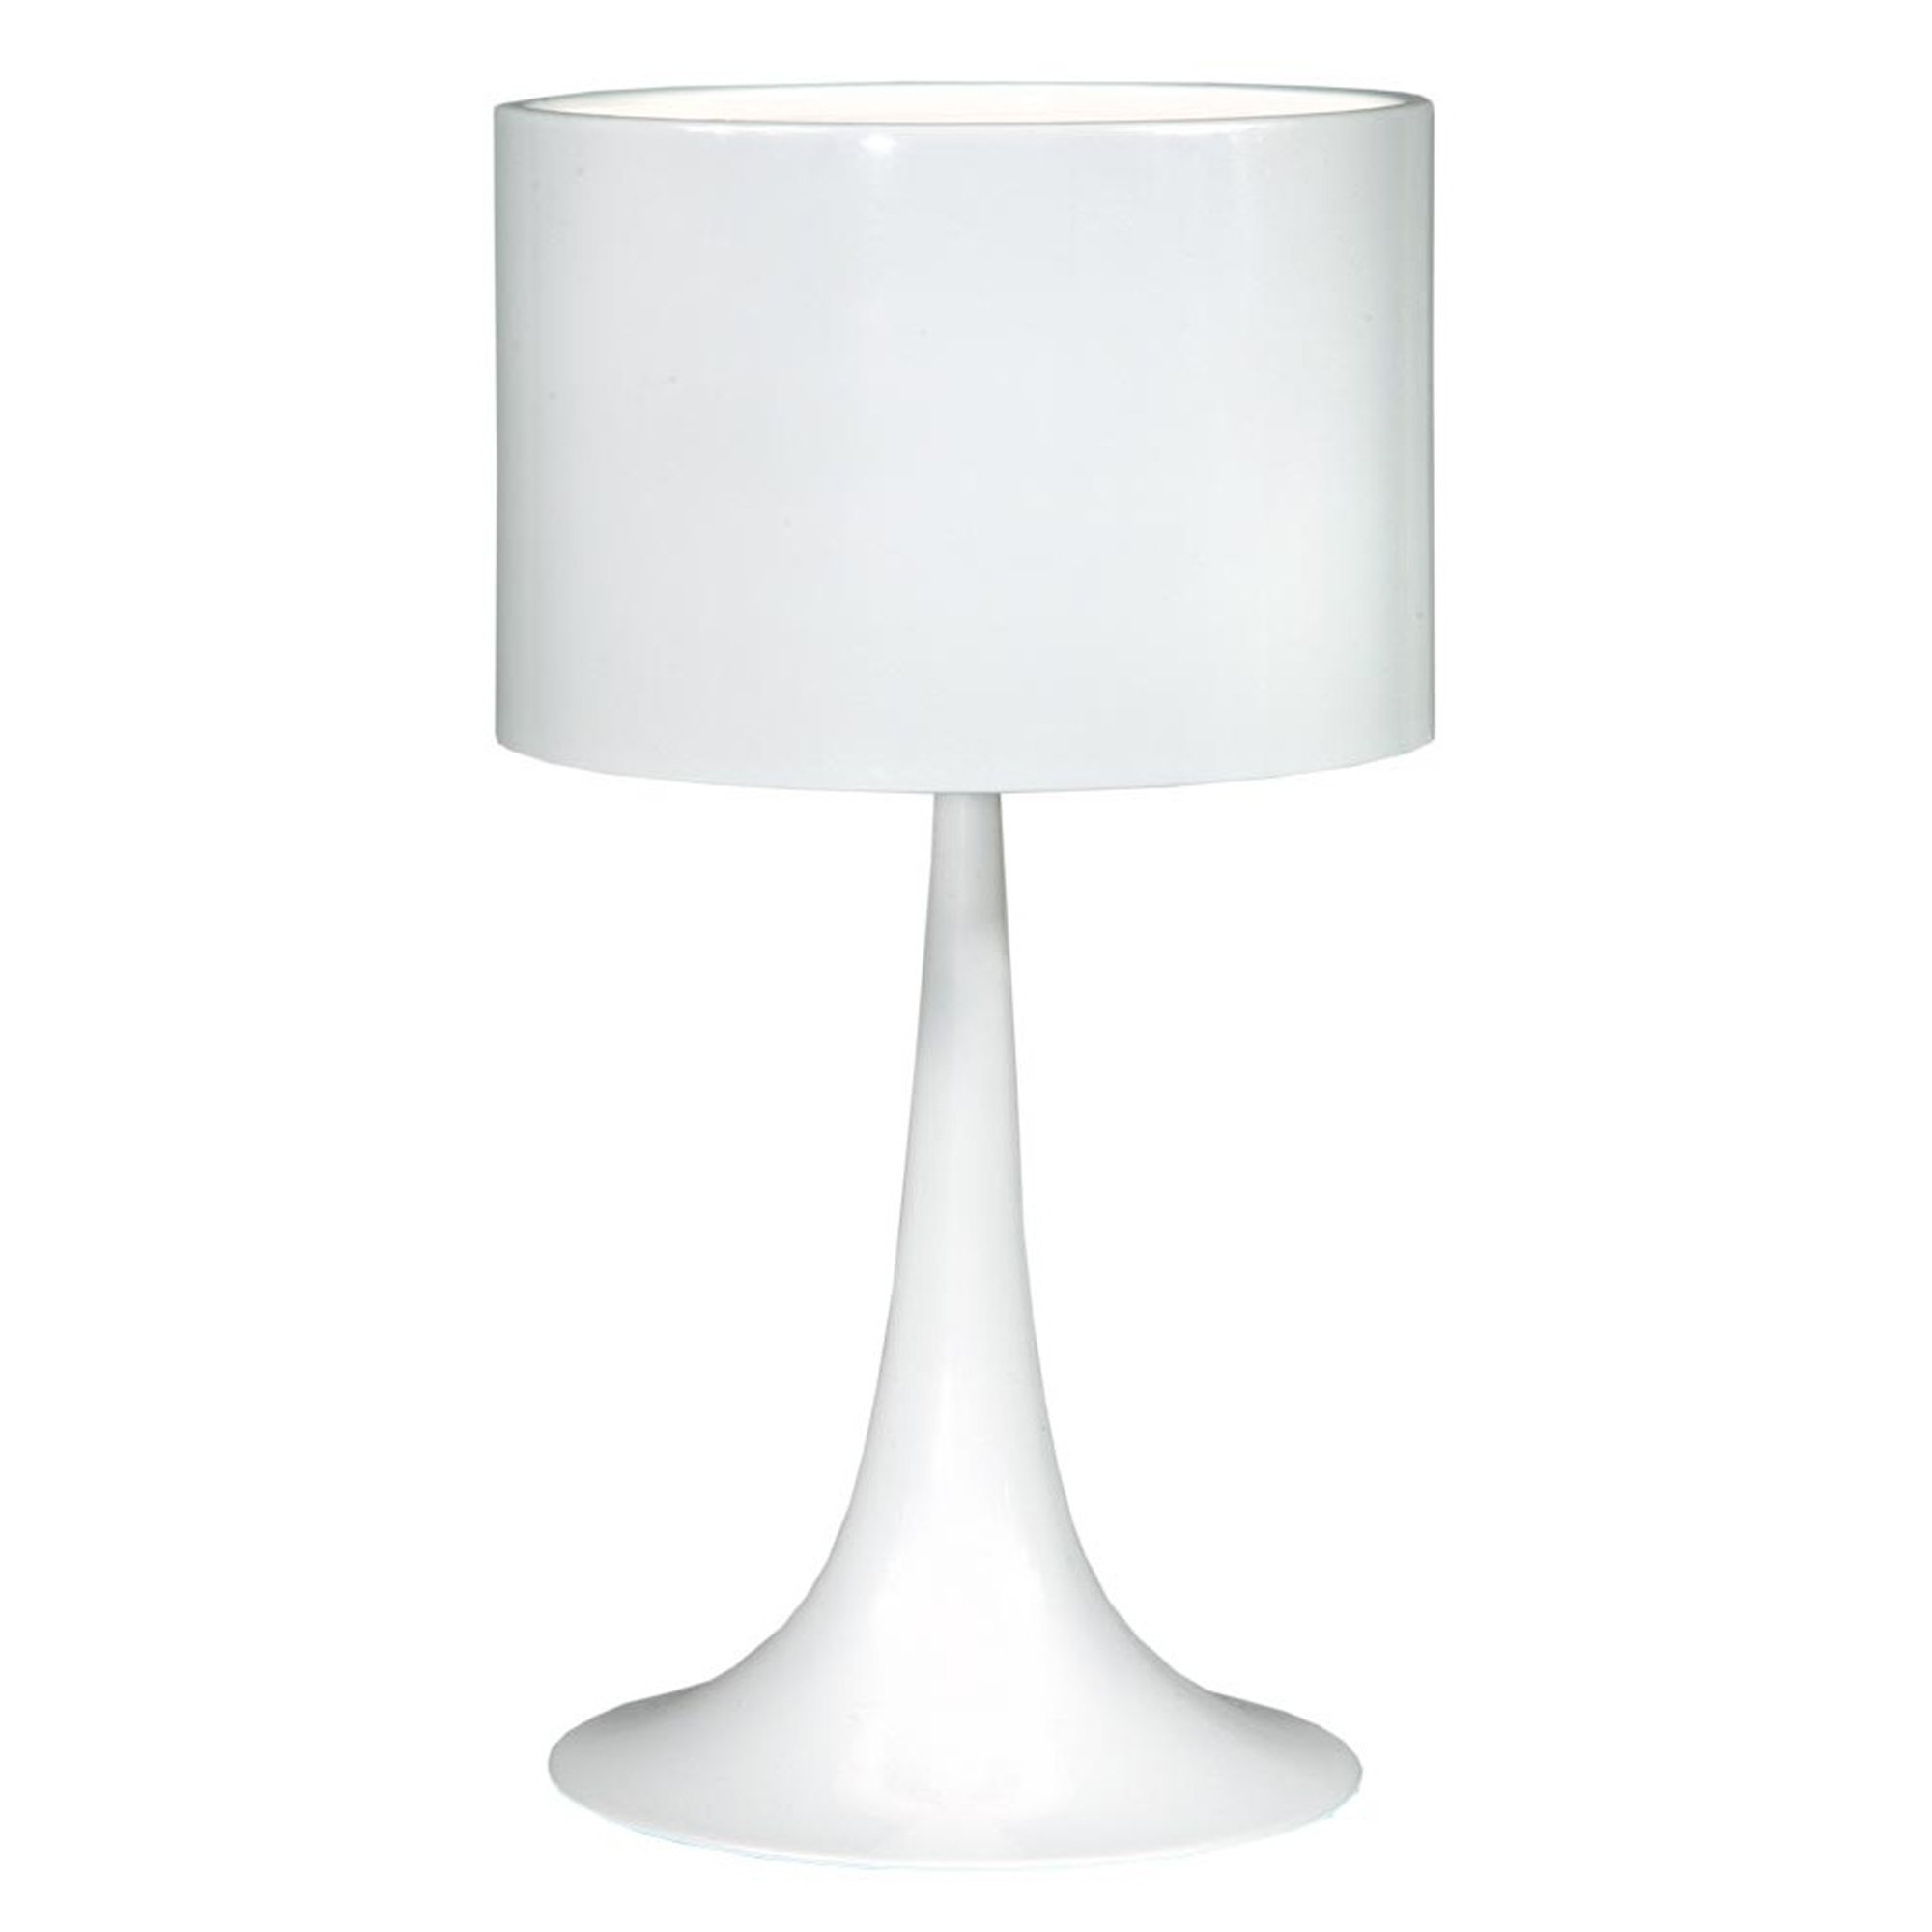 White Nightstand Lamps Cheaper Than Retail Price Buy Clothing Accessories And Lifestyle Products For Women Men